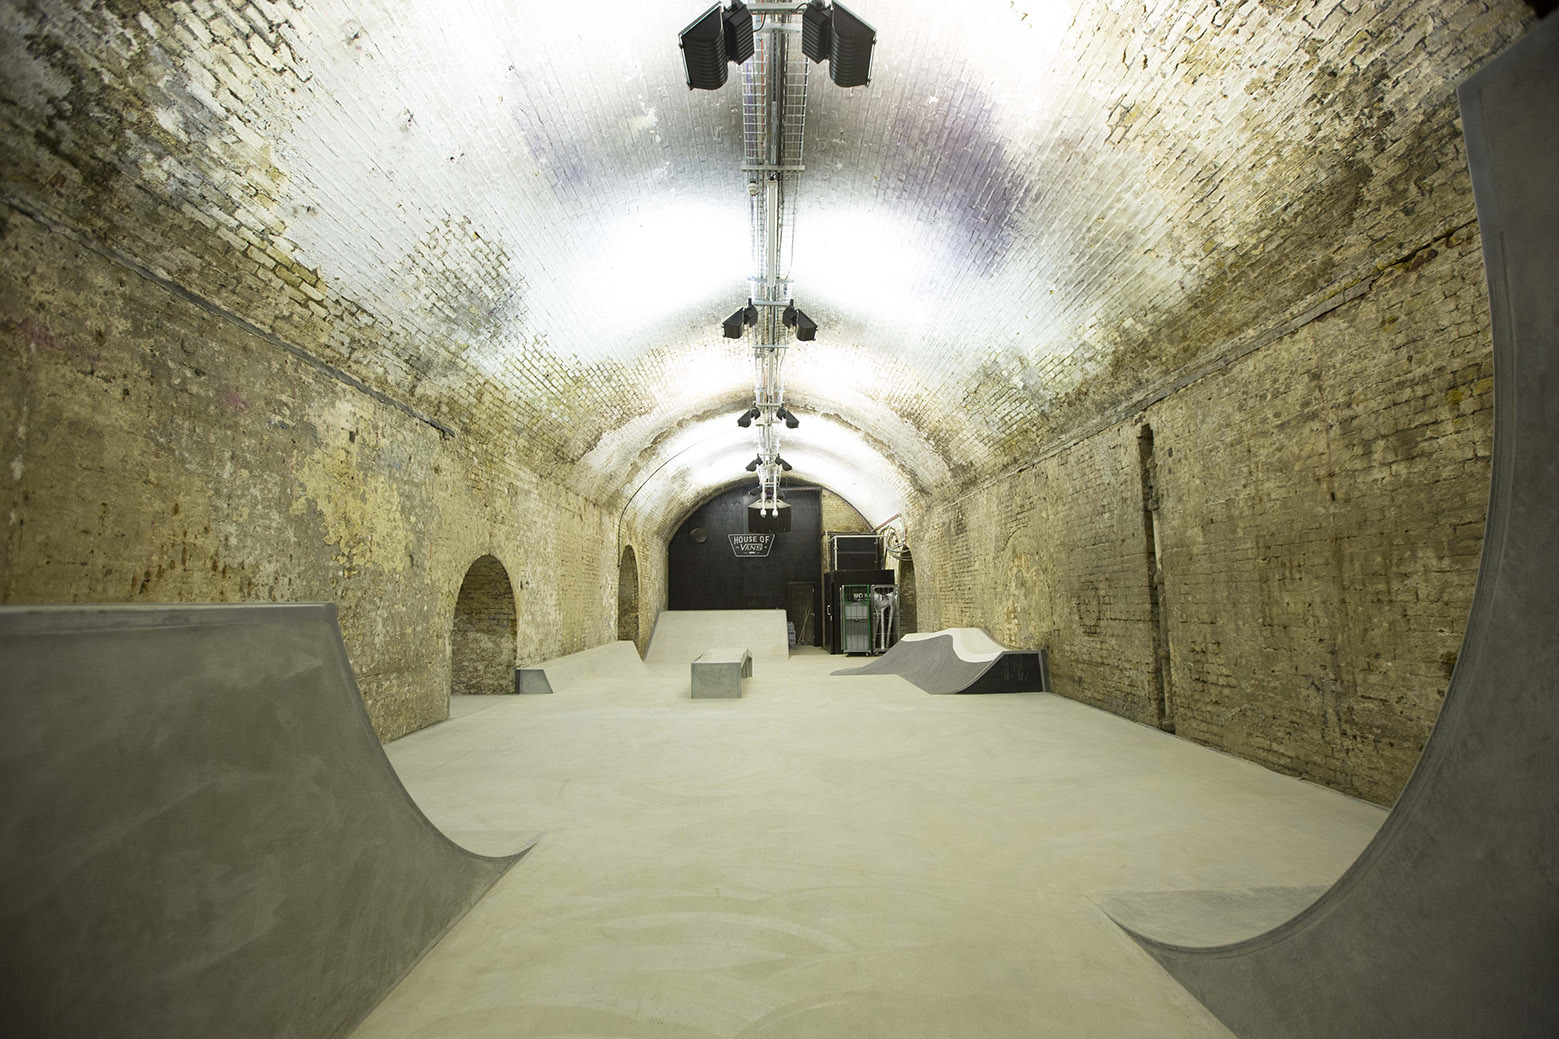 54b06762e58ecedabc000047_house-of-vans-london-tim-greatrex_house_of_vans_london_skatepark_-11-